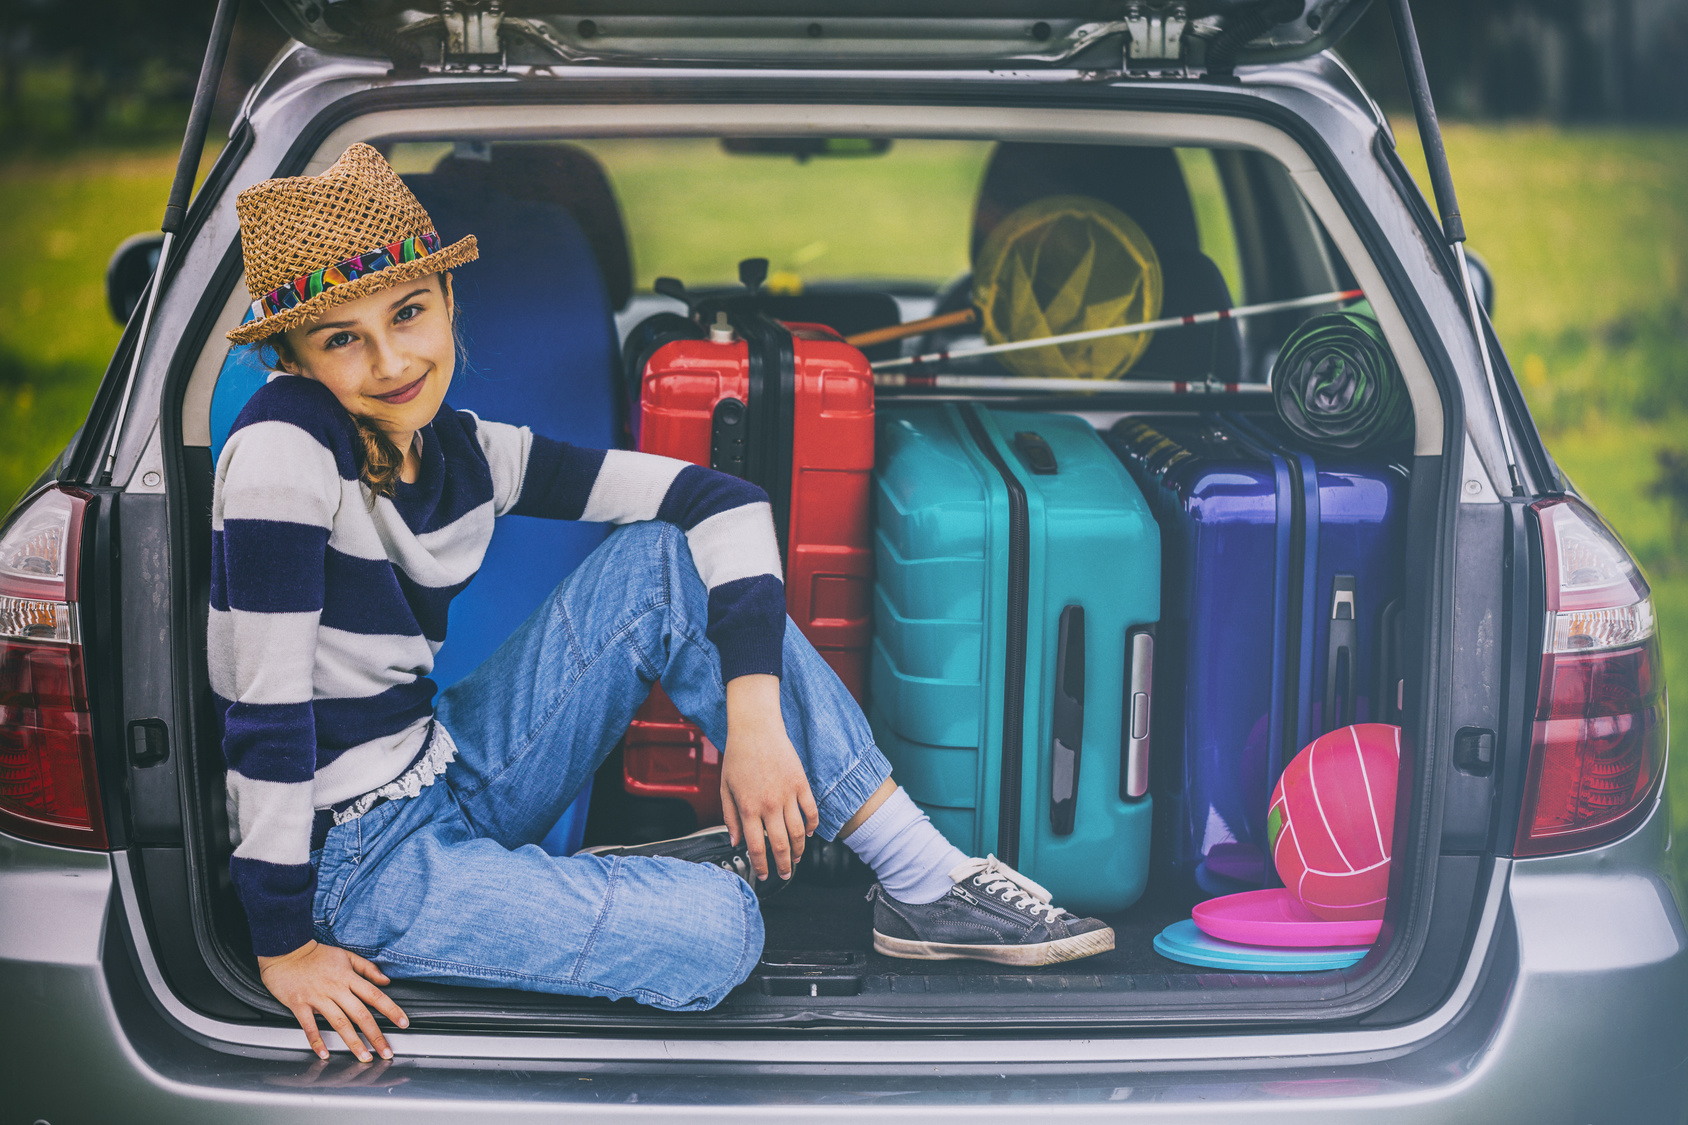 A hip girl in a car trunk looks happy.